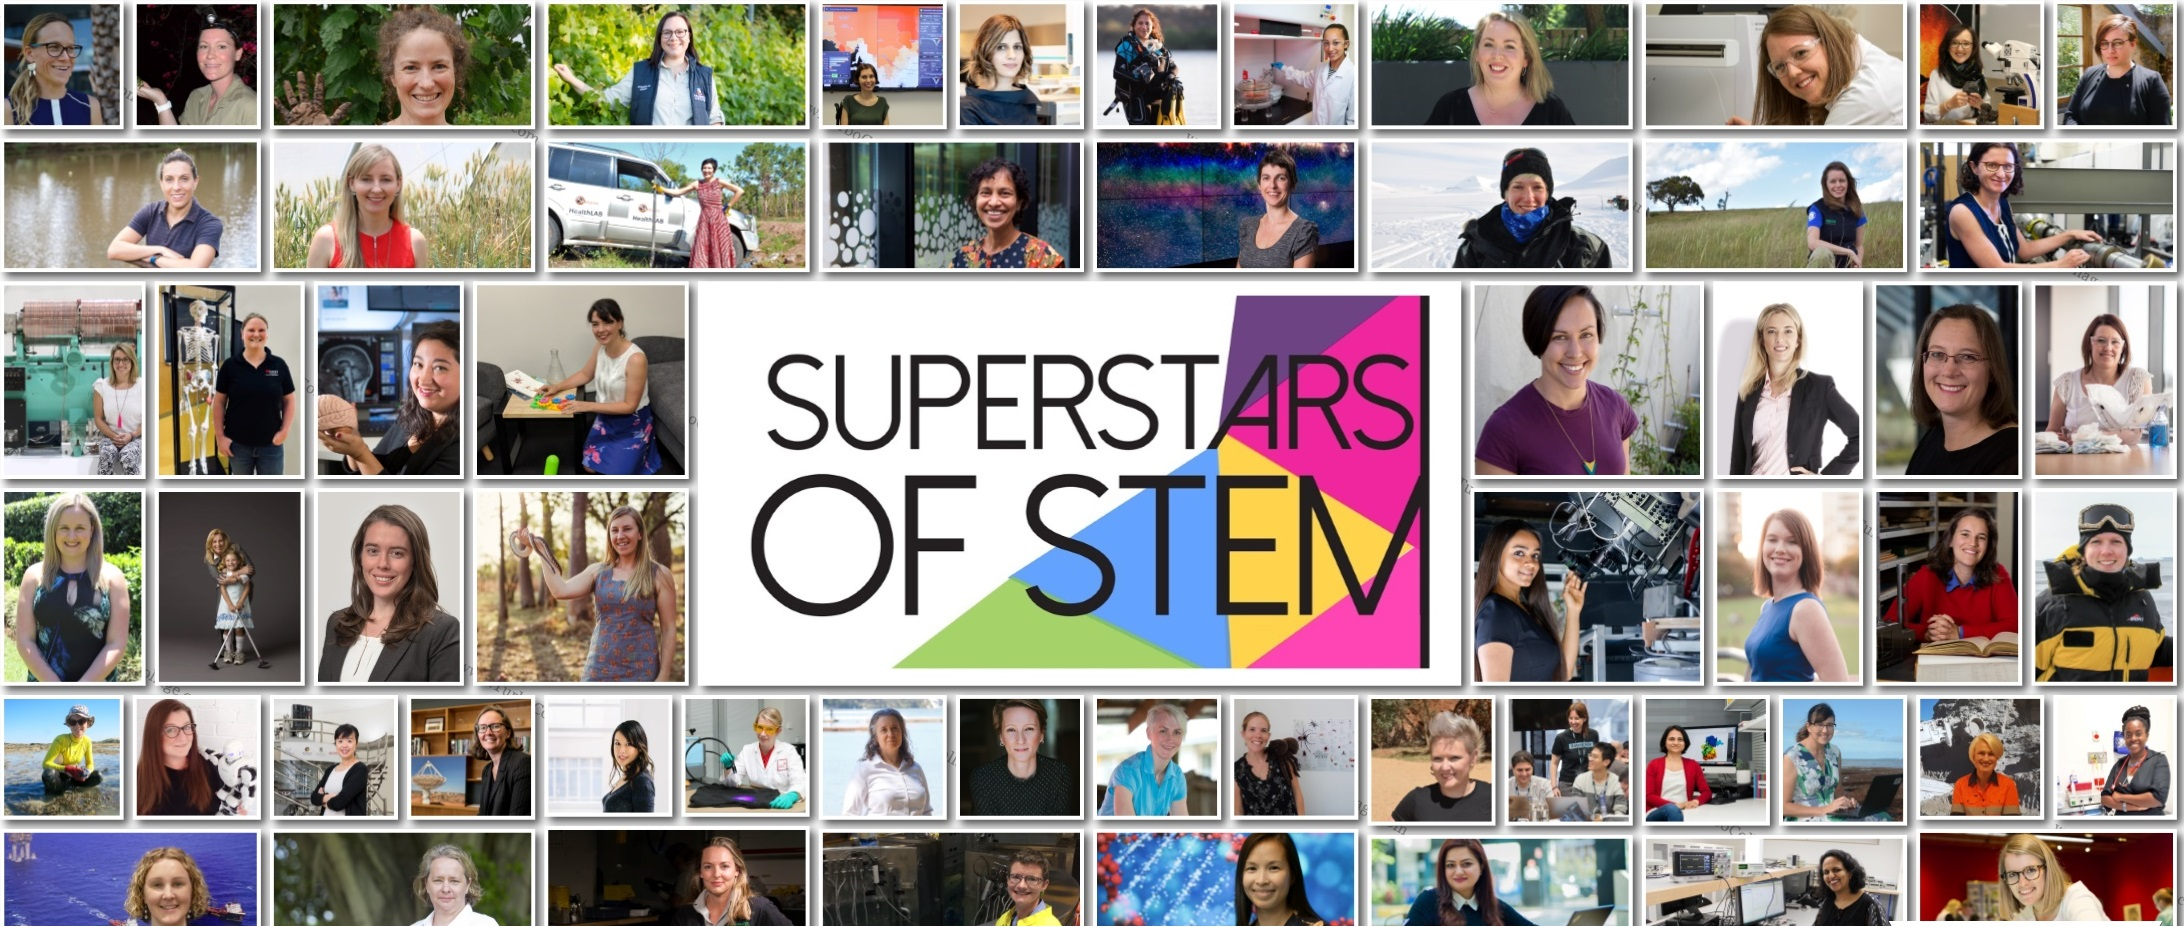 Collage of Superstars of STEM 2019